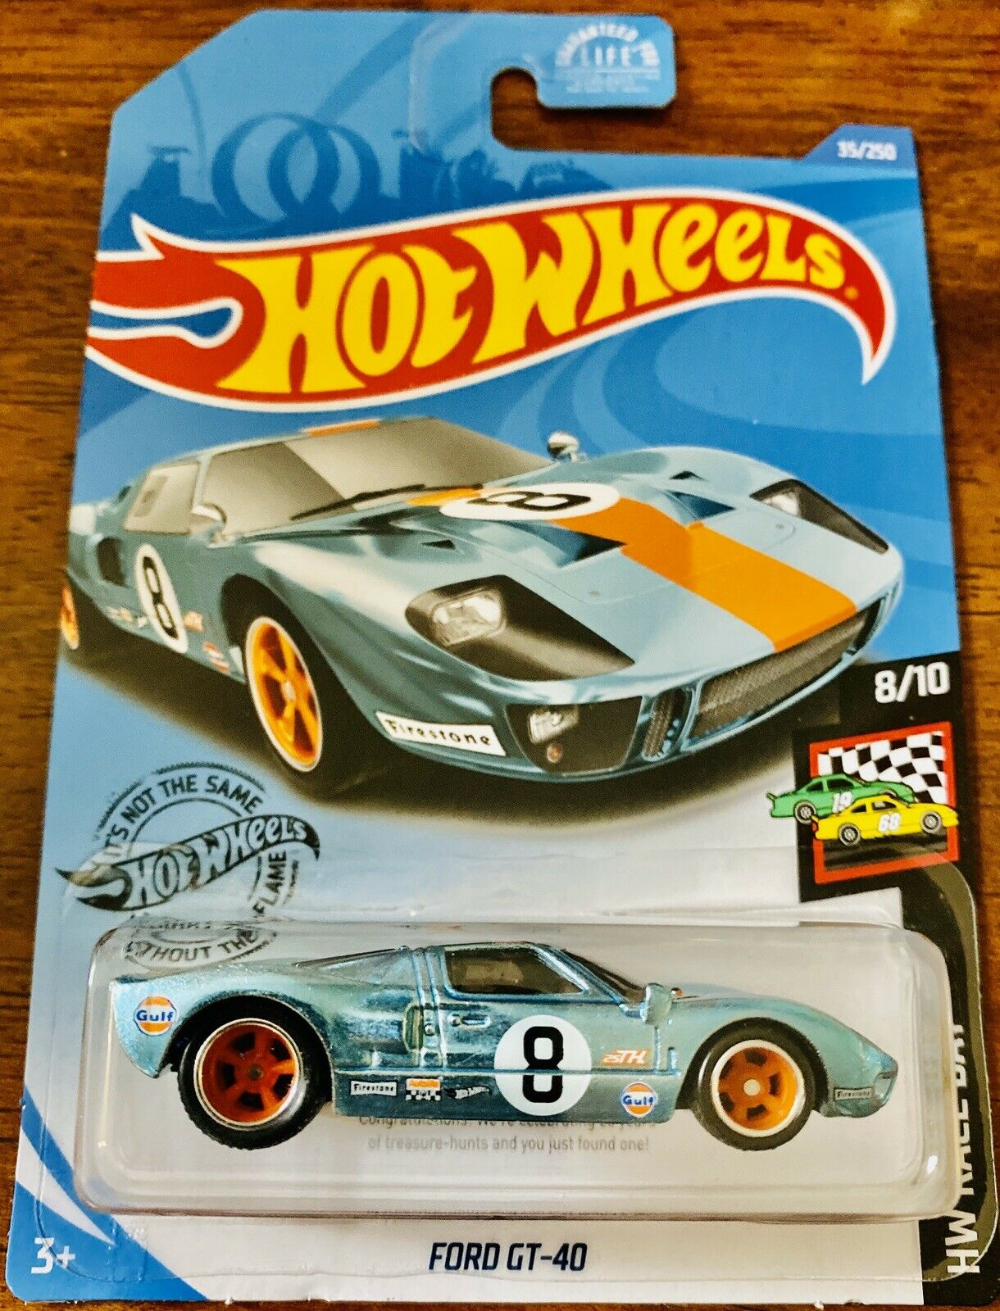 2020 Hot Wheels Super Treasure Hunt Ford Gt 40 Gulf Tampos In Hand Usa Seller Ebay Ford Gt Super Treasure Hunt Hot Wheels